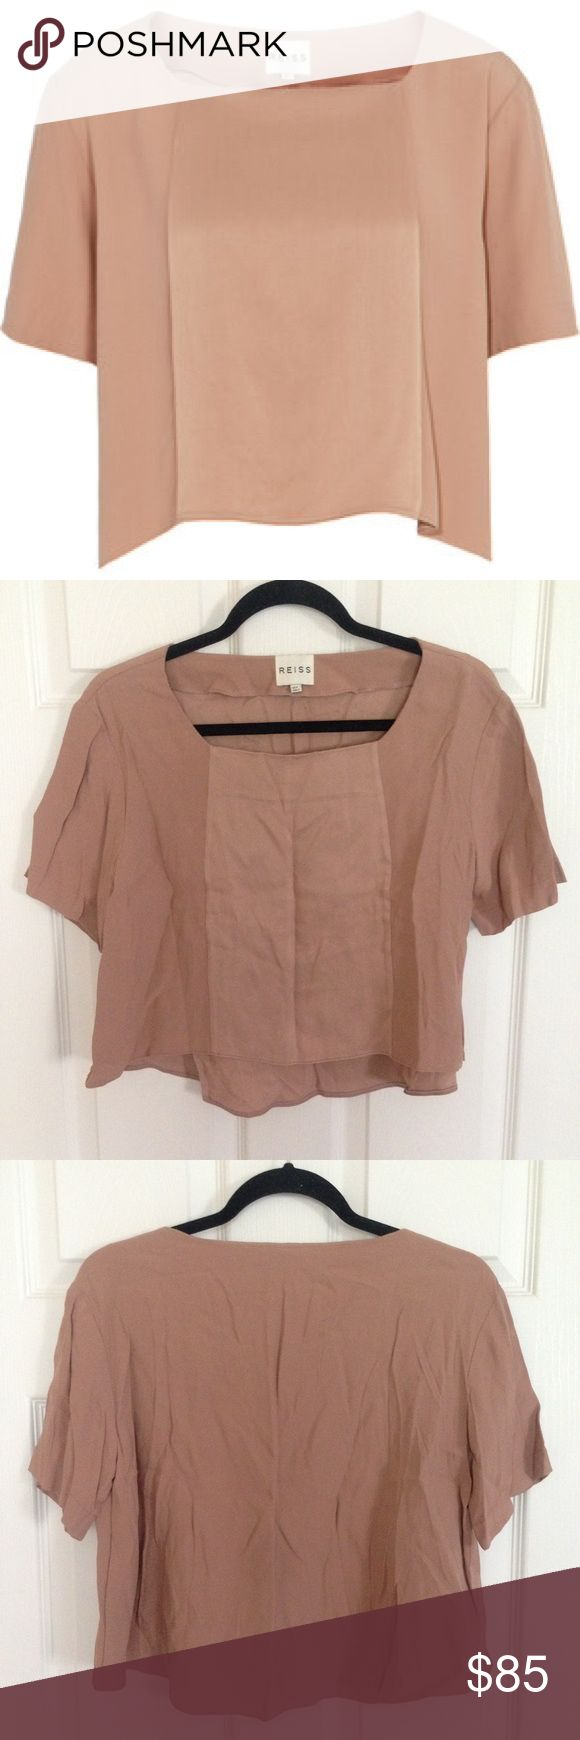 Reiss Top Absolutely gorgeous Reiss archie two fabric top size 4. Beautiful color that goes with everything. Looks amazing on. Excellent condition, only needs to be ironed due to it being stored away in a vacuum bag. Retails for $170. Completely sold out. Reiss Tops Crop Tops